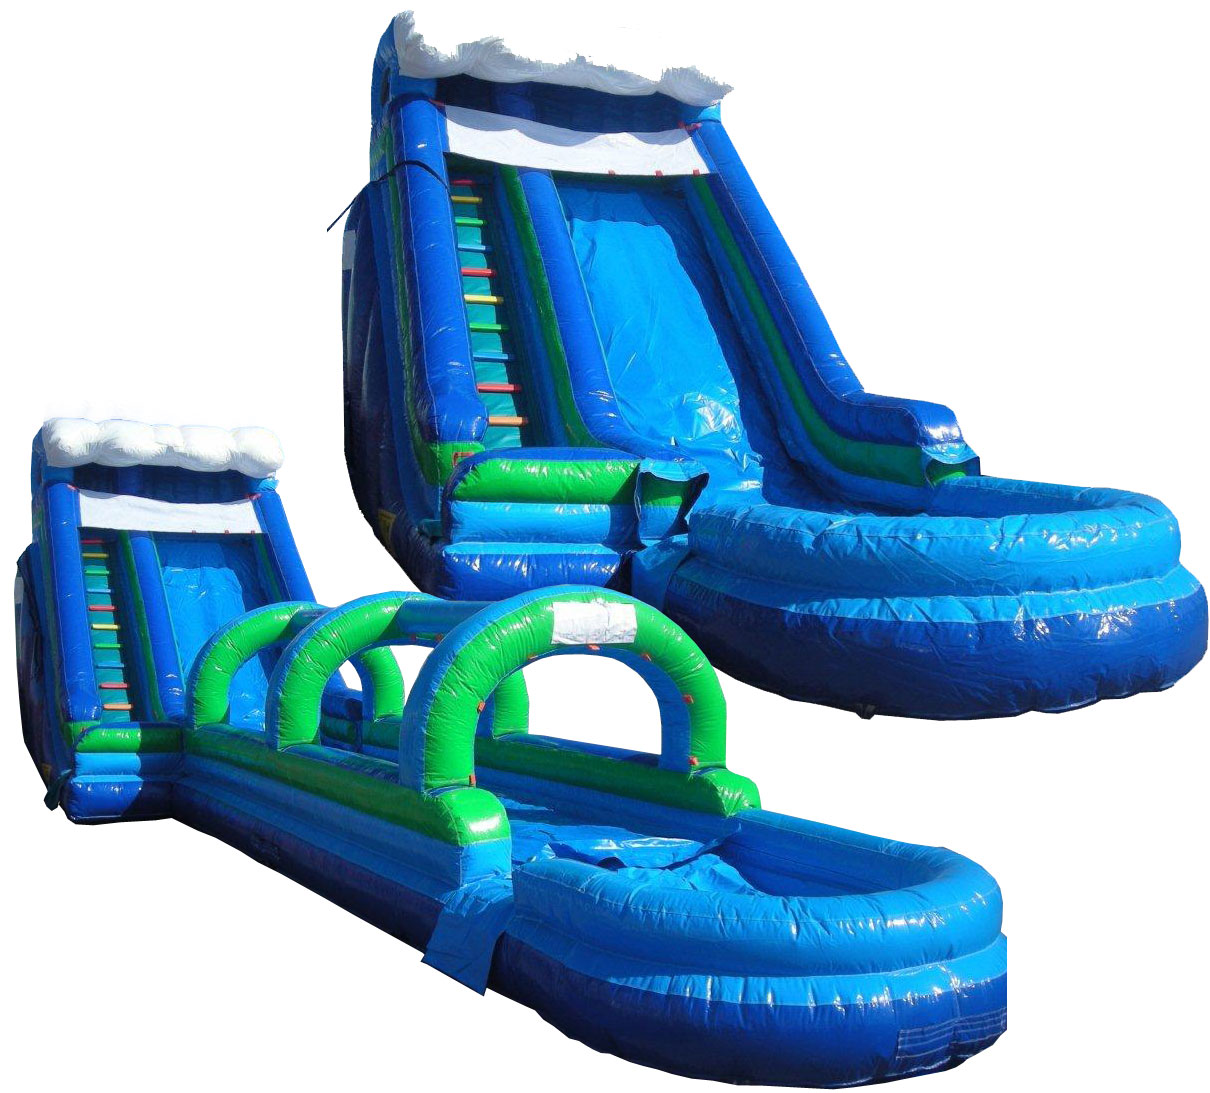 Inflatable Water Slide To Rent: Waterslide Rentals Houston